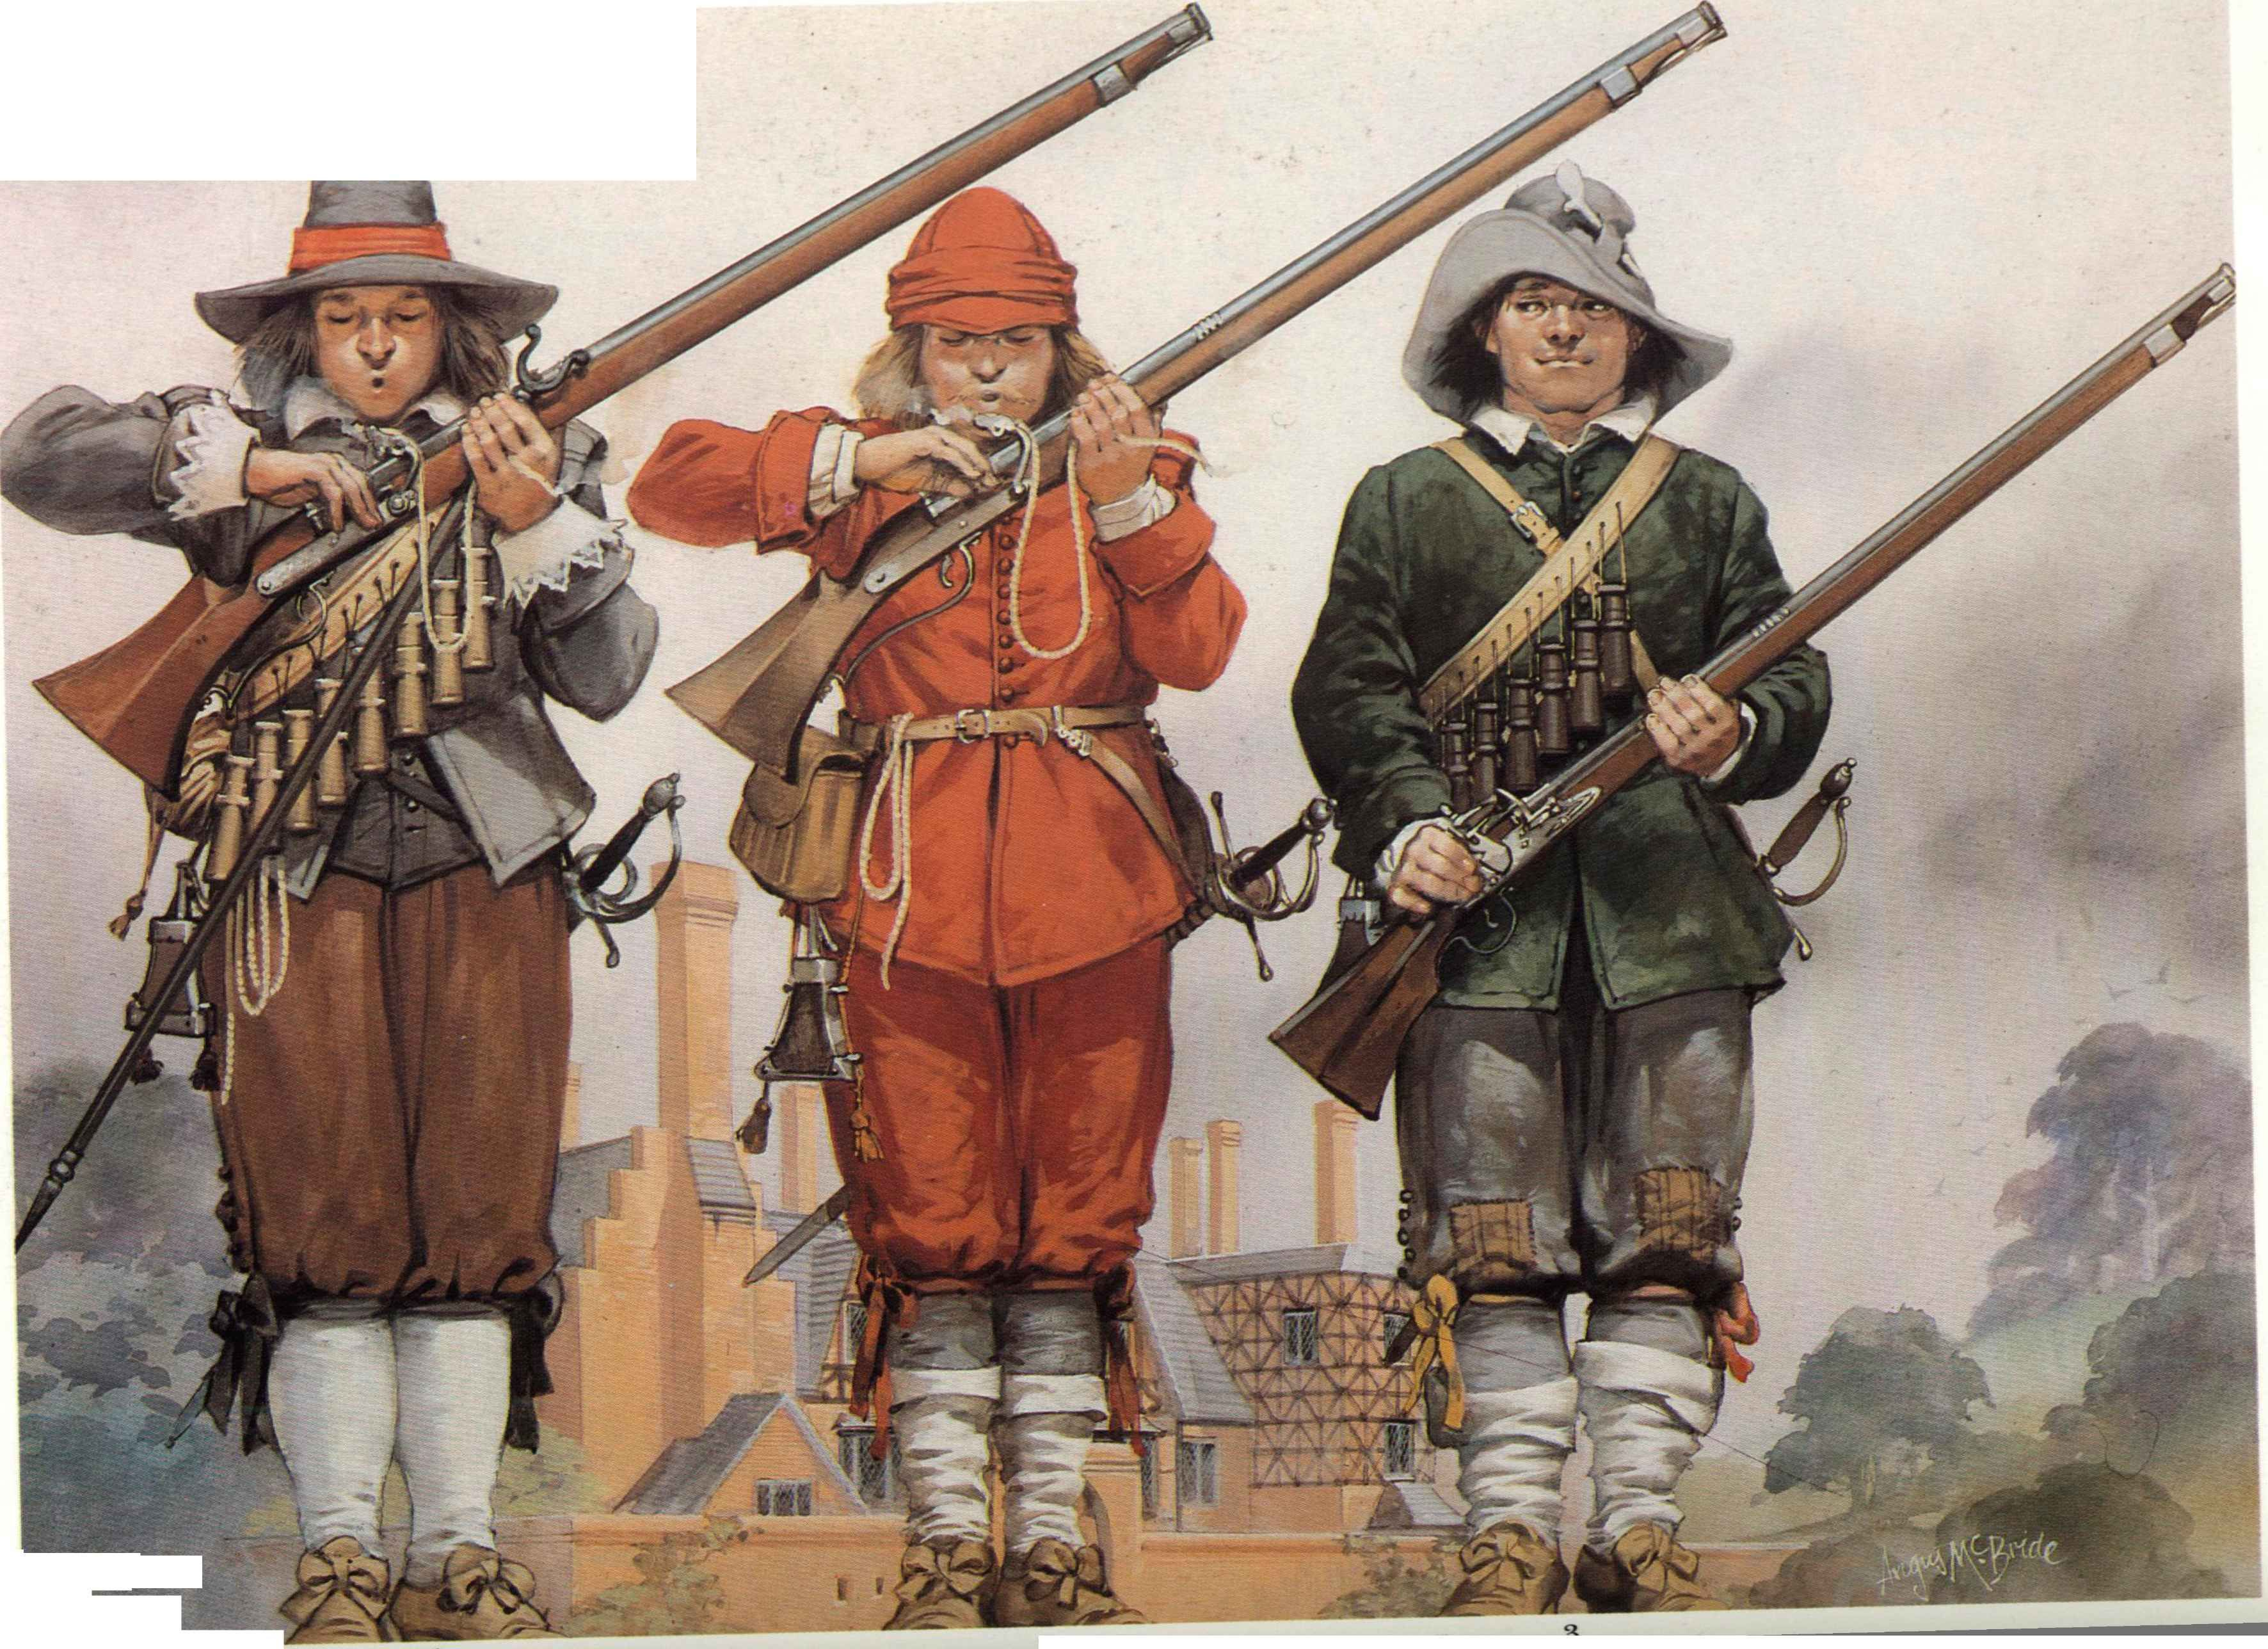 an analysis of the english civil war in 17th century Analysis carried out on skeletons discovered in a centuries-old mass  of the  most brutal, bloody and short battles of the 17th century civil wars  south east  of scotland to durham, in north east england, where they were.